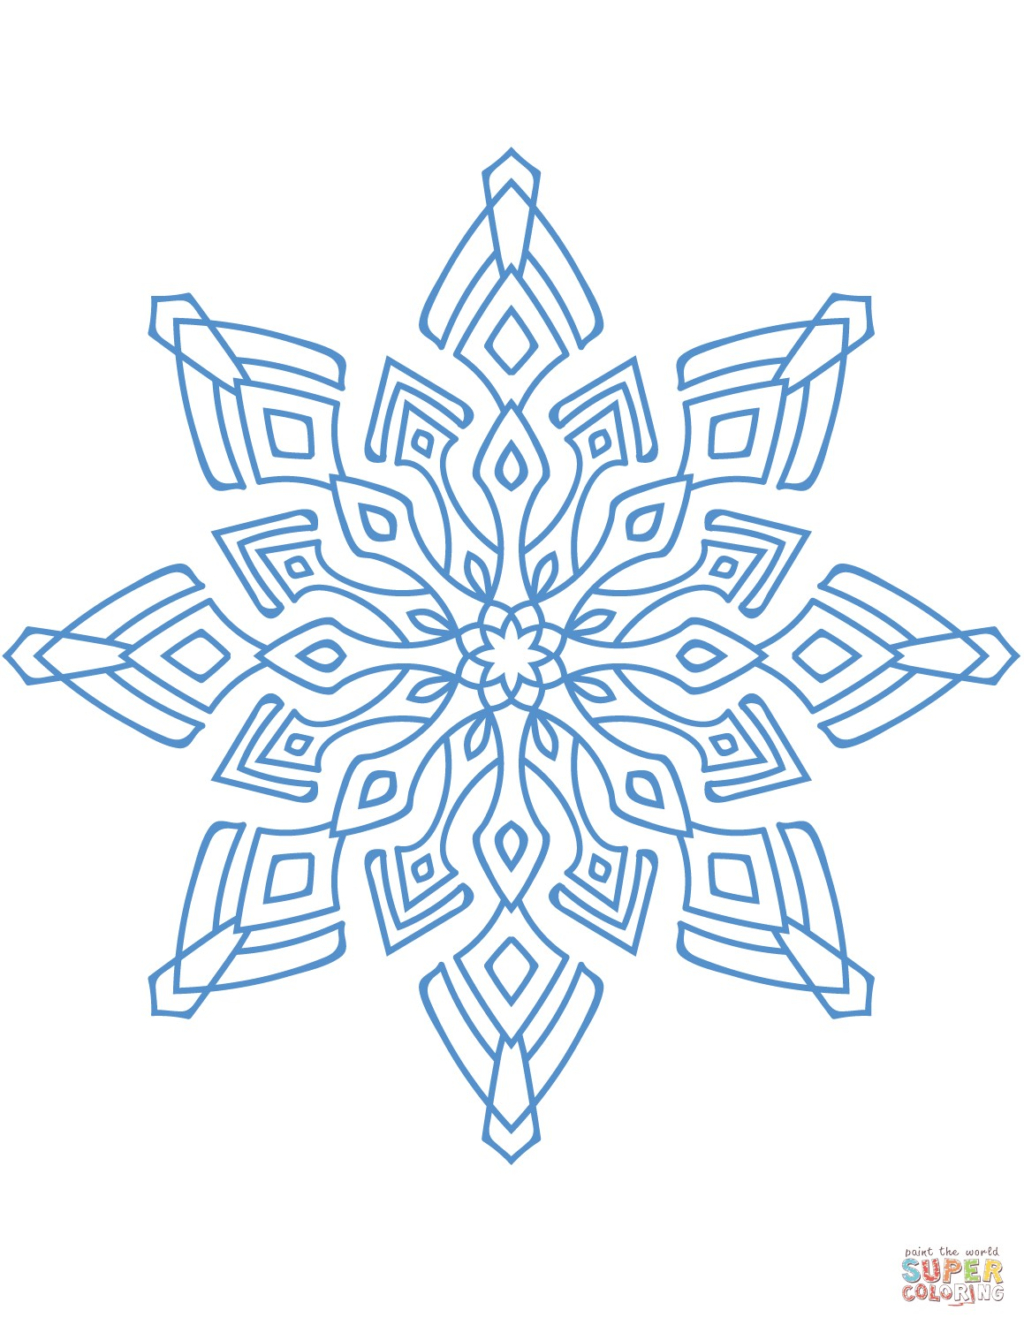 Coloring Book World ~ Splendi Snowflake Coloringt Image Inspirations - Free Printable Snowflakes